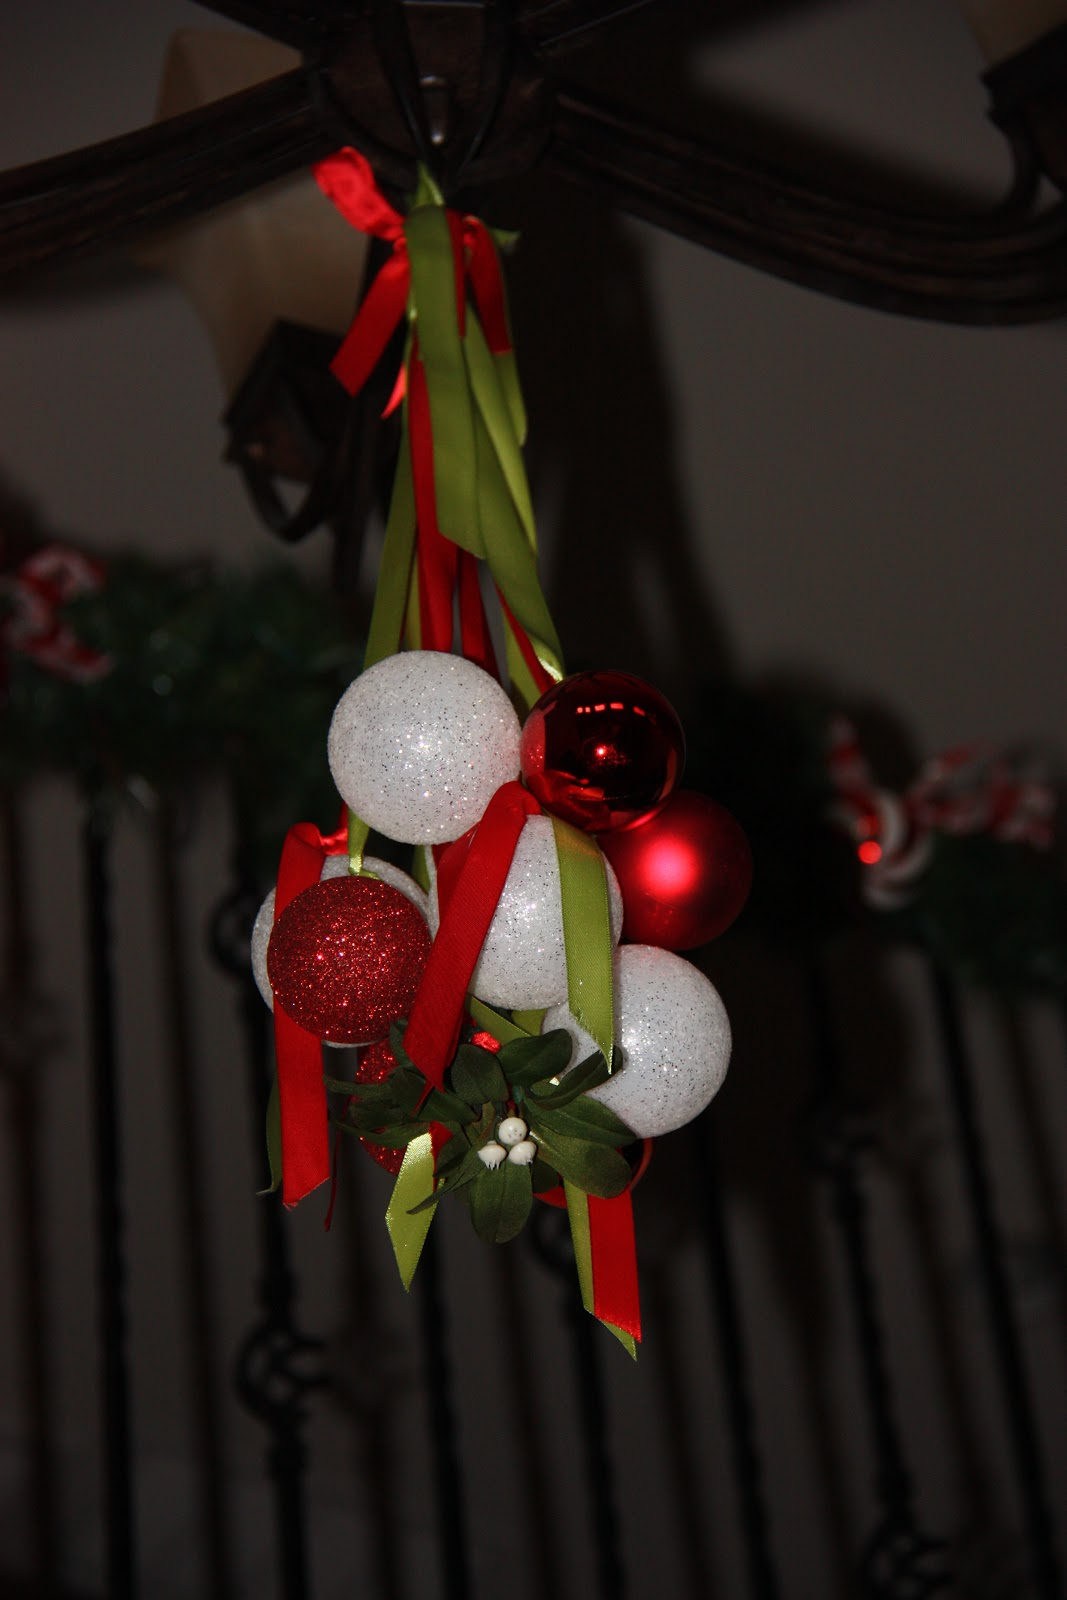 9 Locate Two Of The Longest Pieces Of Ribbon Above The Knot Use These Two  Ribbons To Tie The Mistletoe Ornament Chandelier To Your Chandelier Or To A  Hook